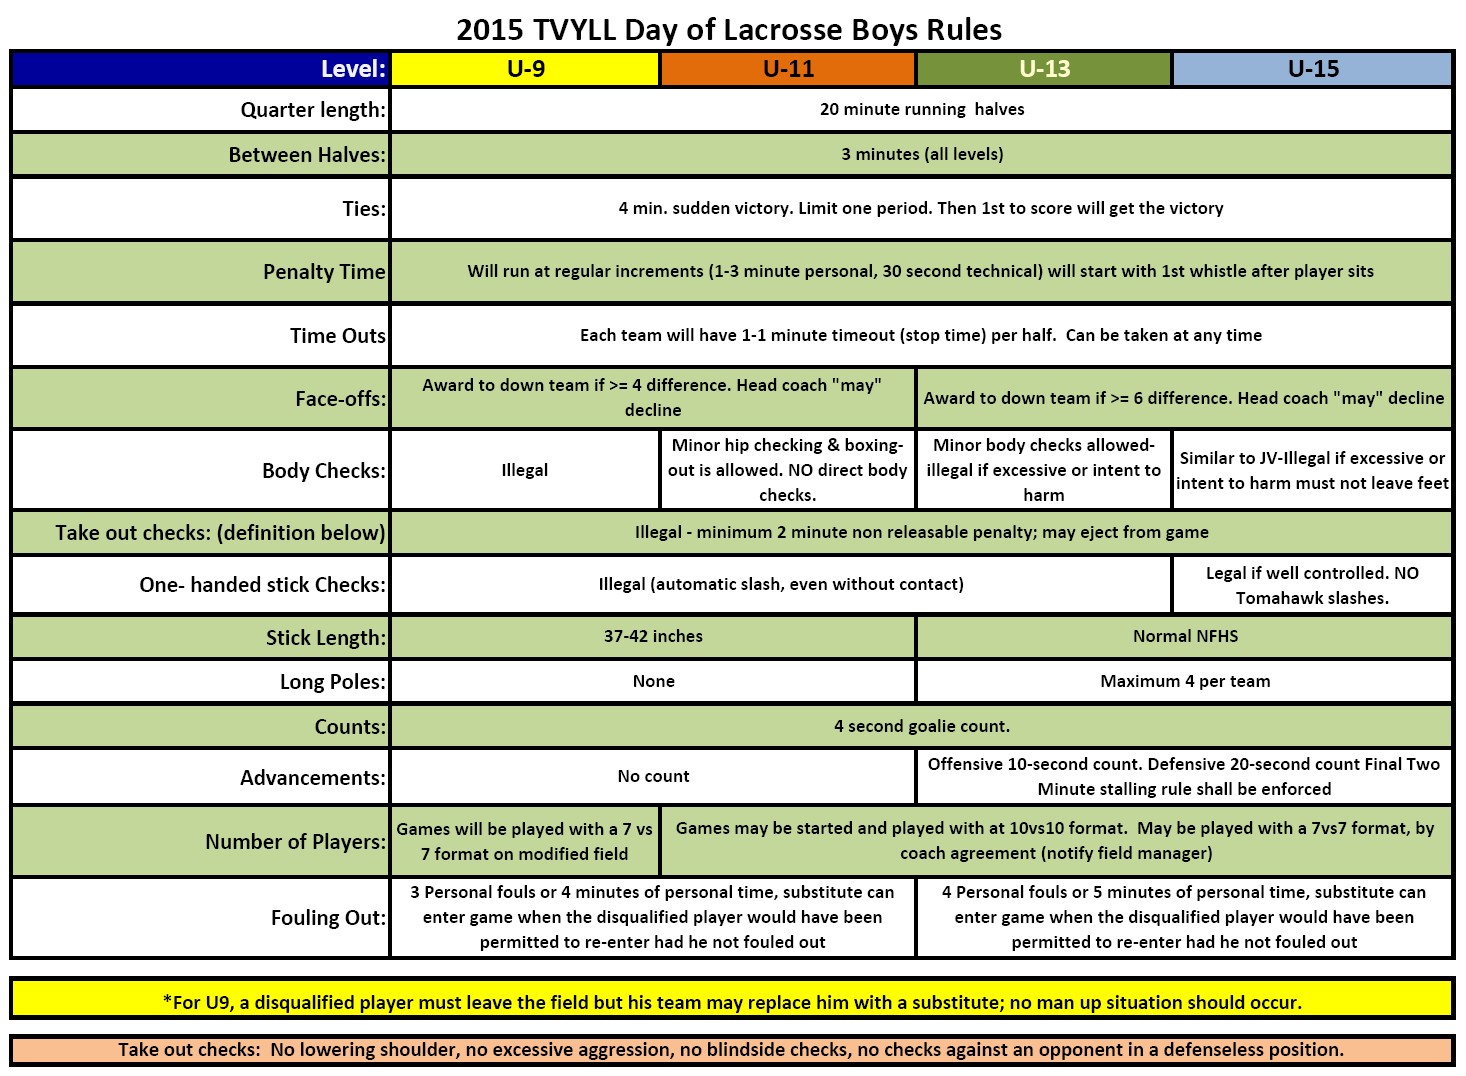 2015 TVYLL Day of Lacrosse Rules